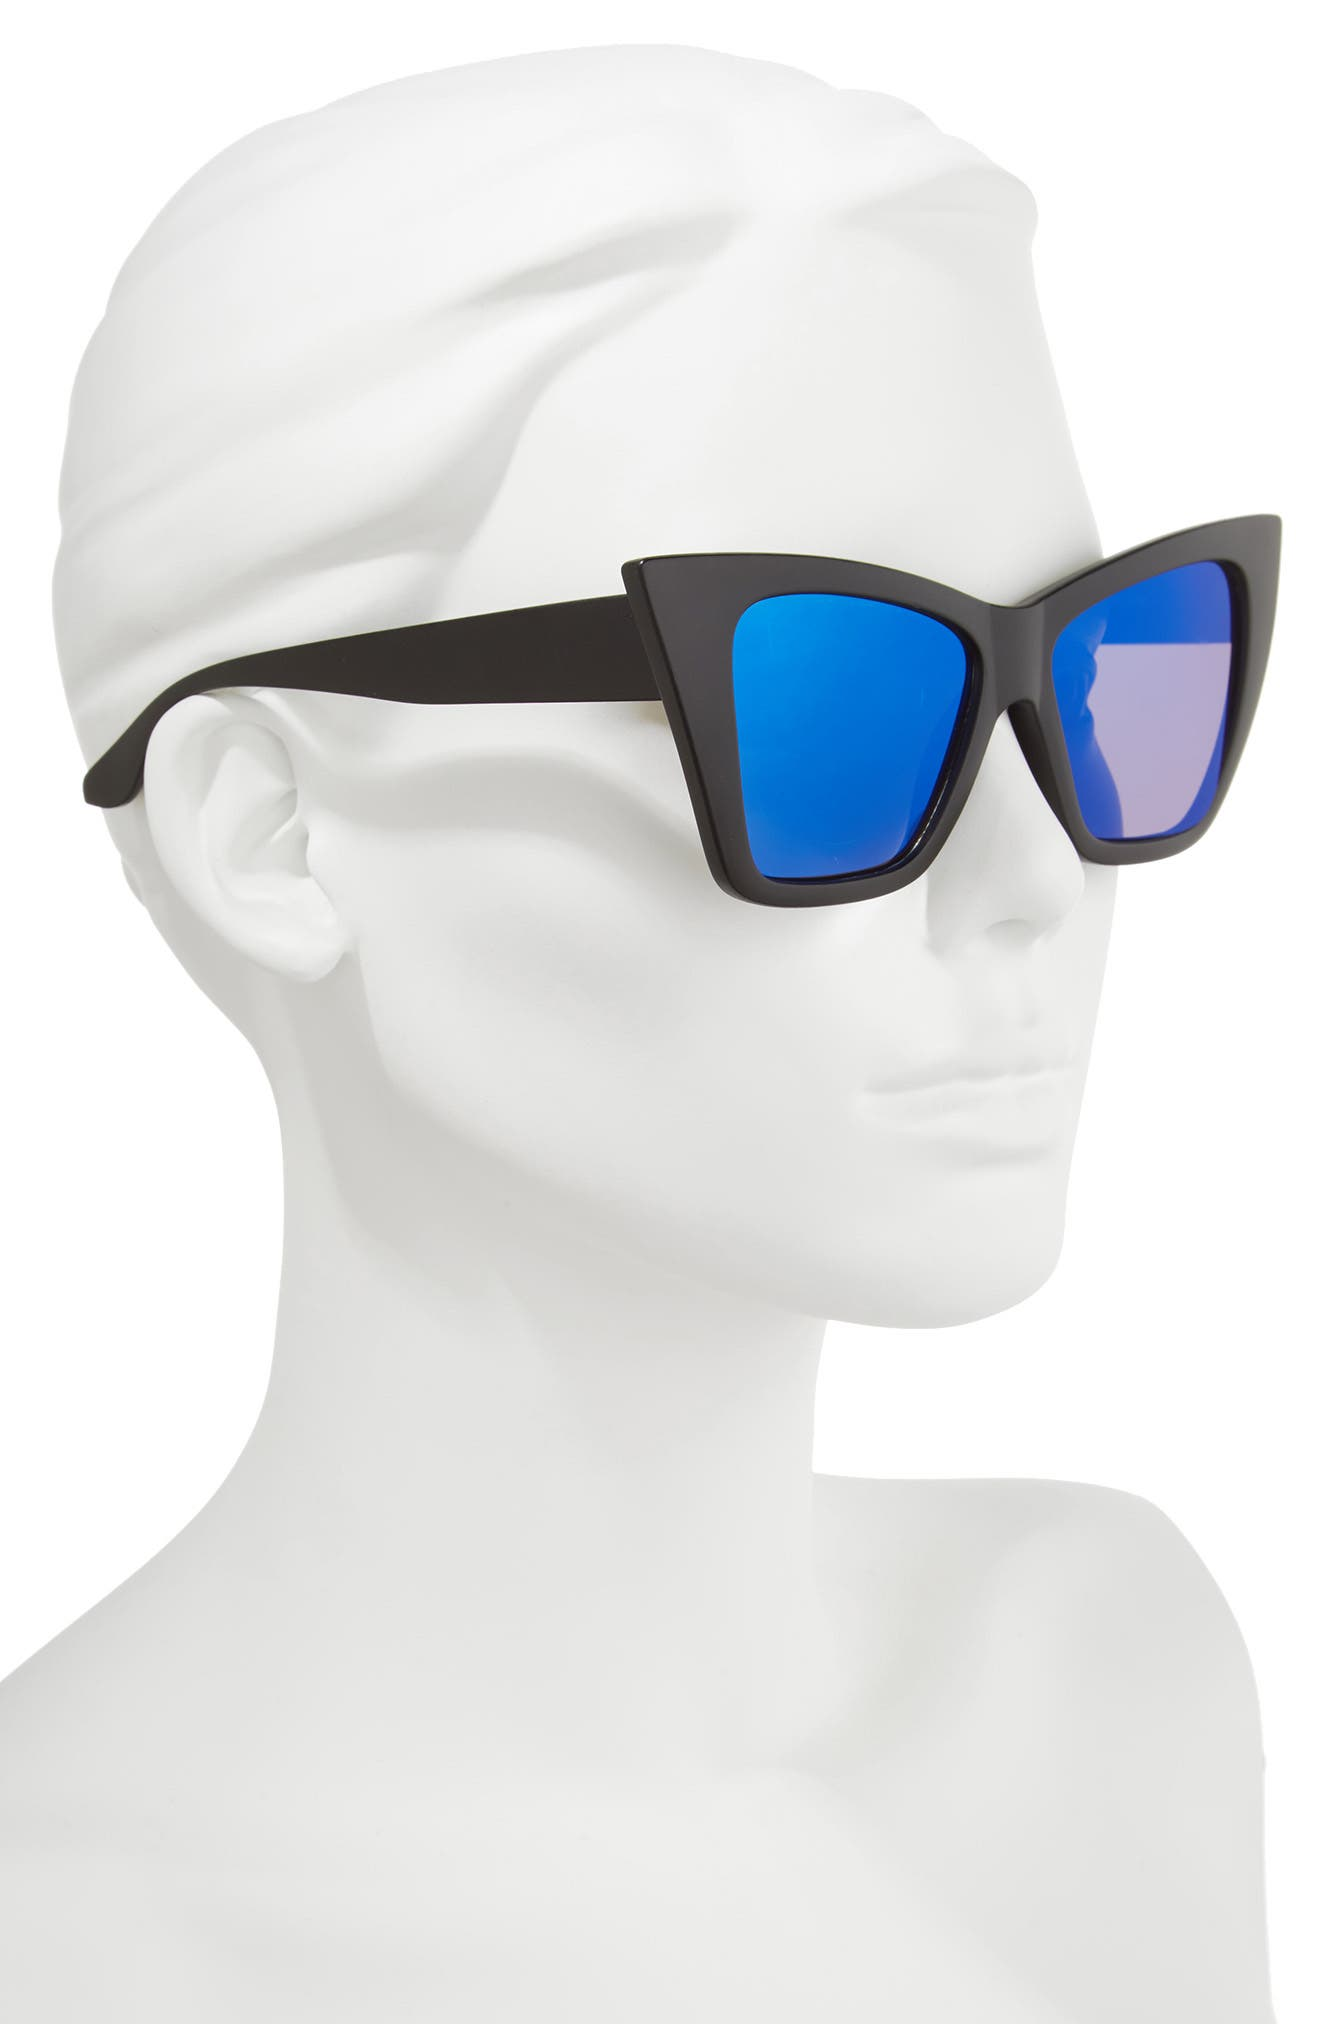 66mm Oversize Cat Eye Sunglasses,                             Alternate thumbnail 2, color,                             001